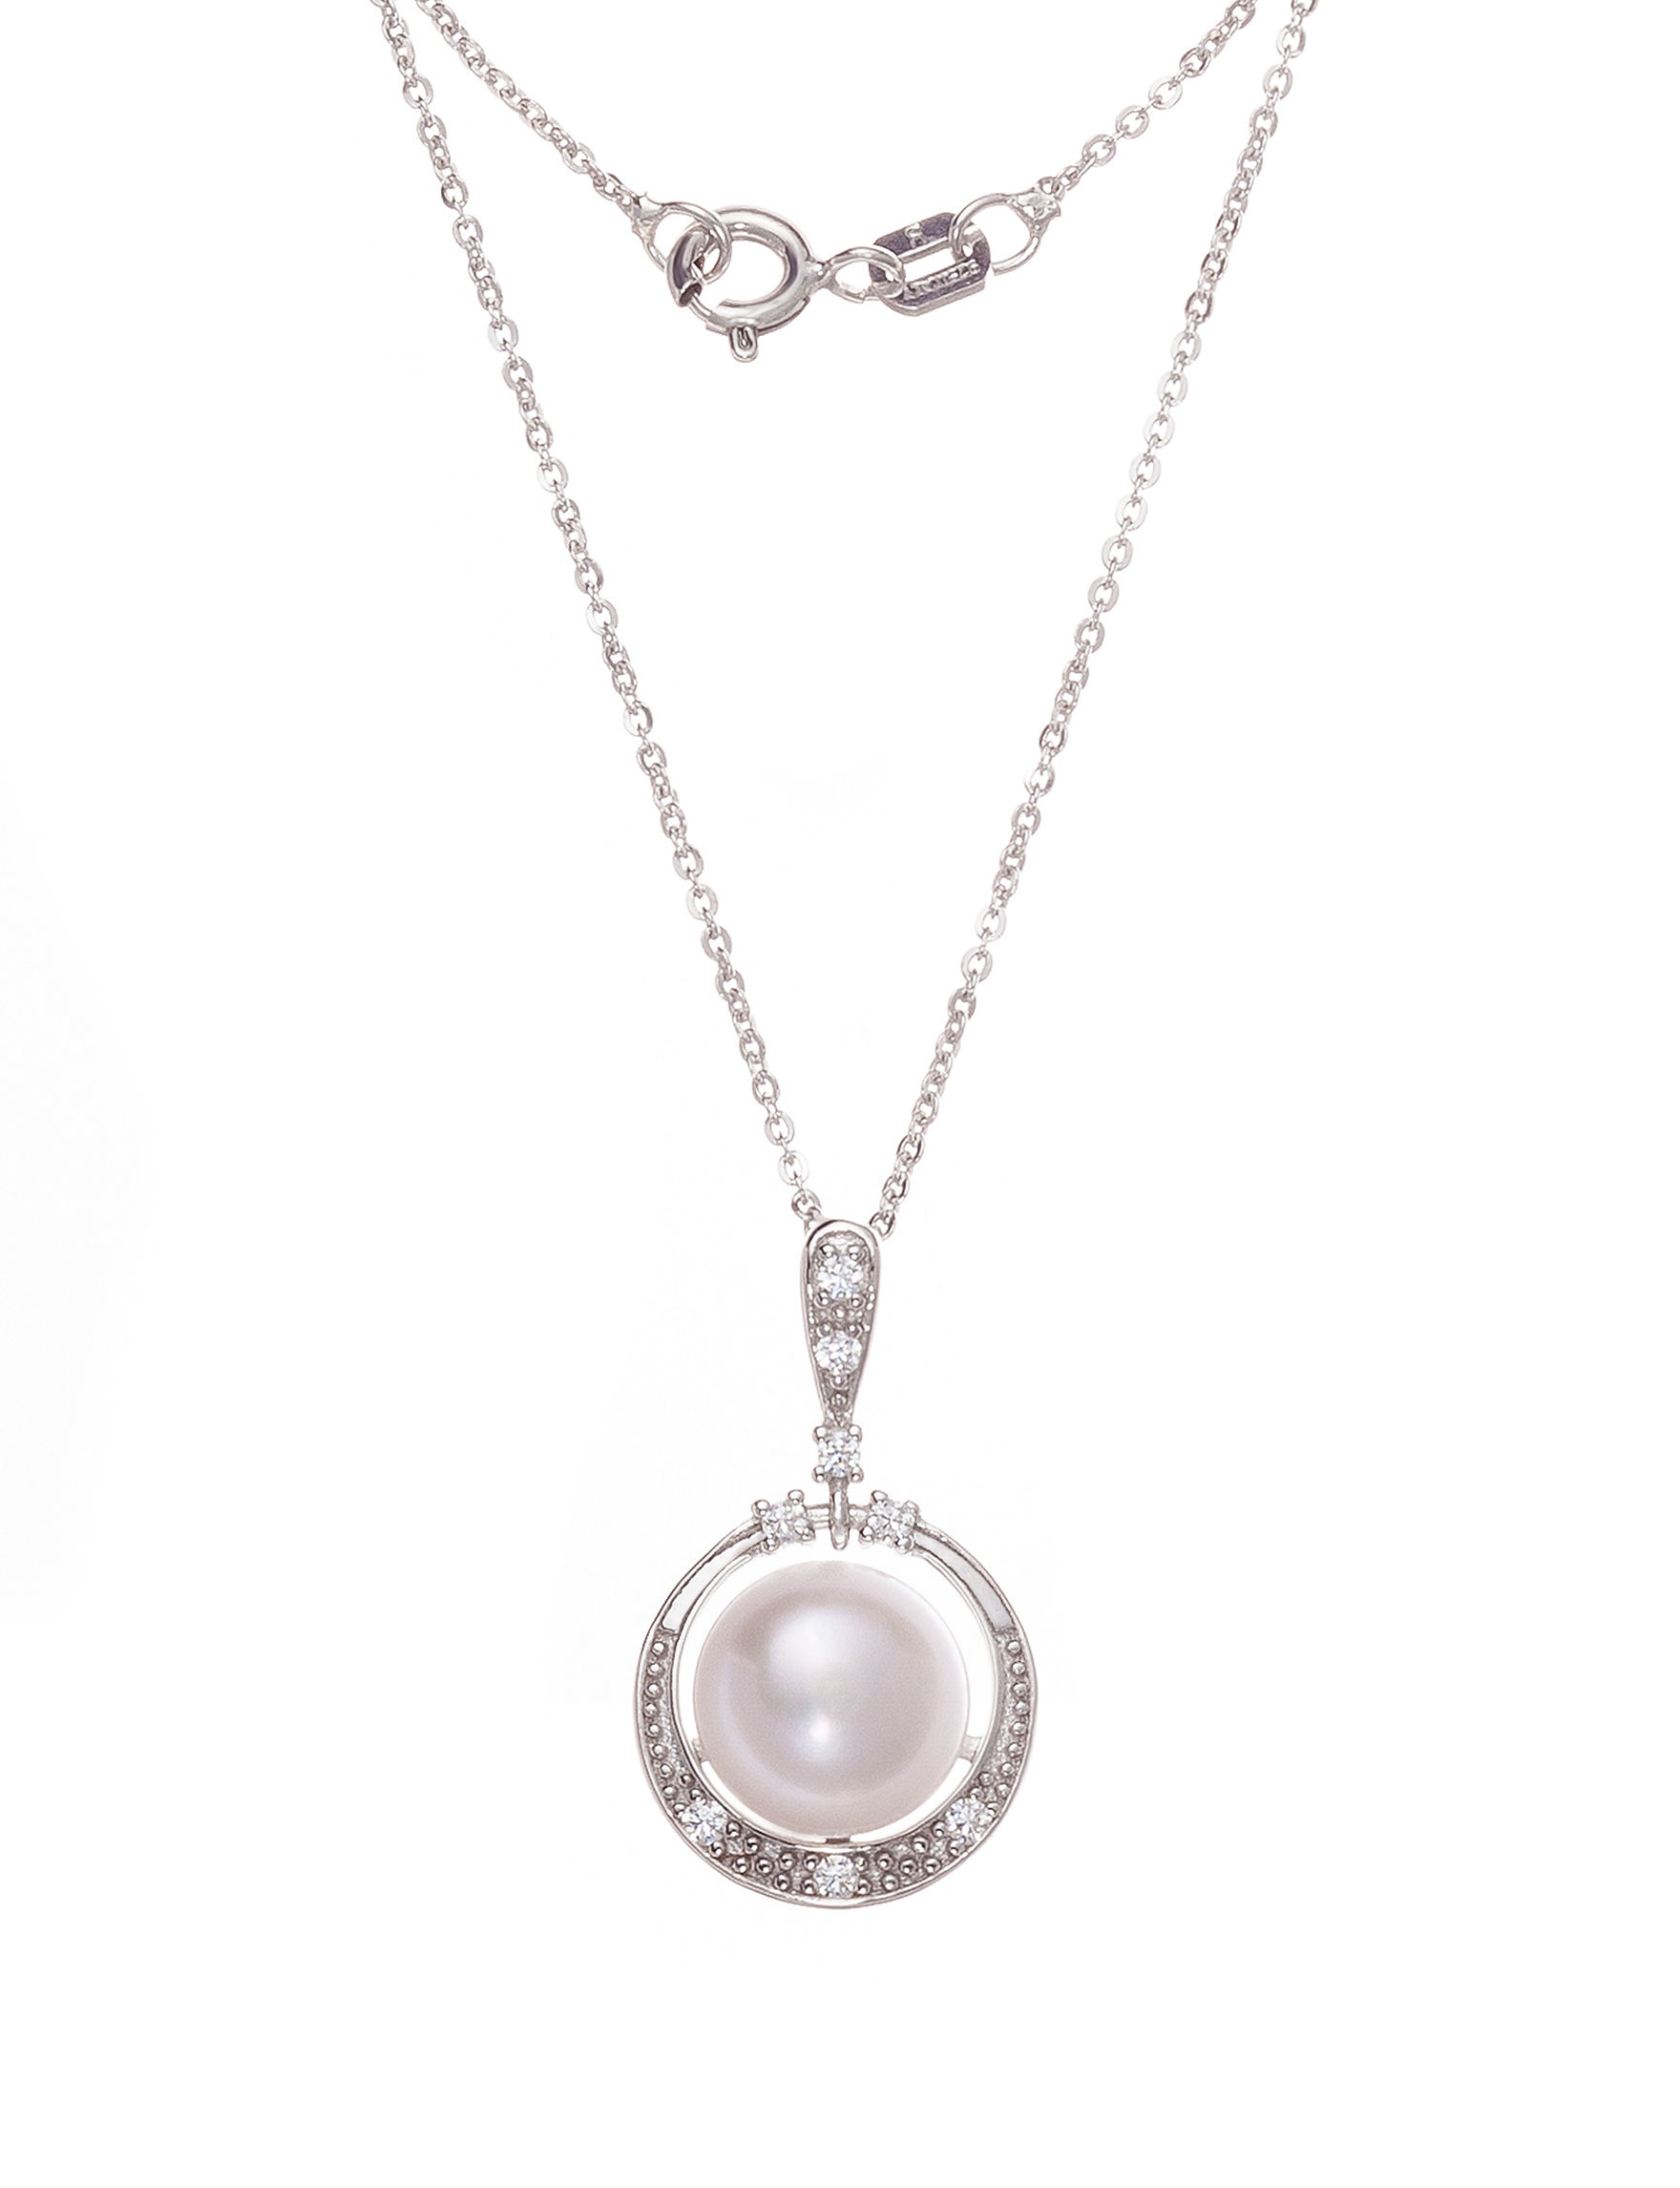 Kencraft White / Silver Necklaces & Pendants Fine Jewelry